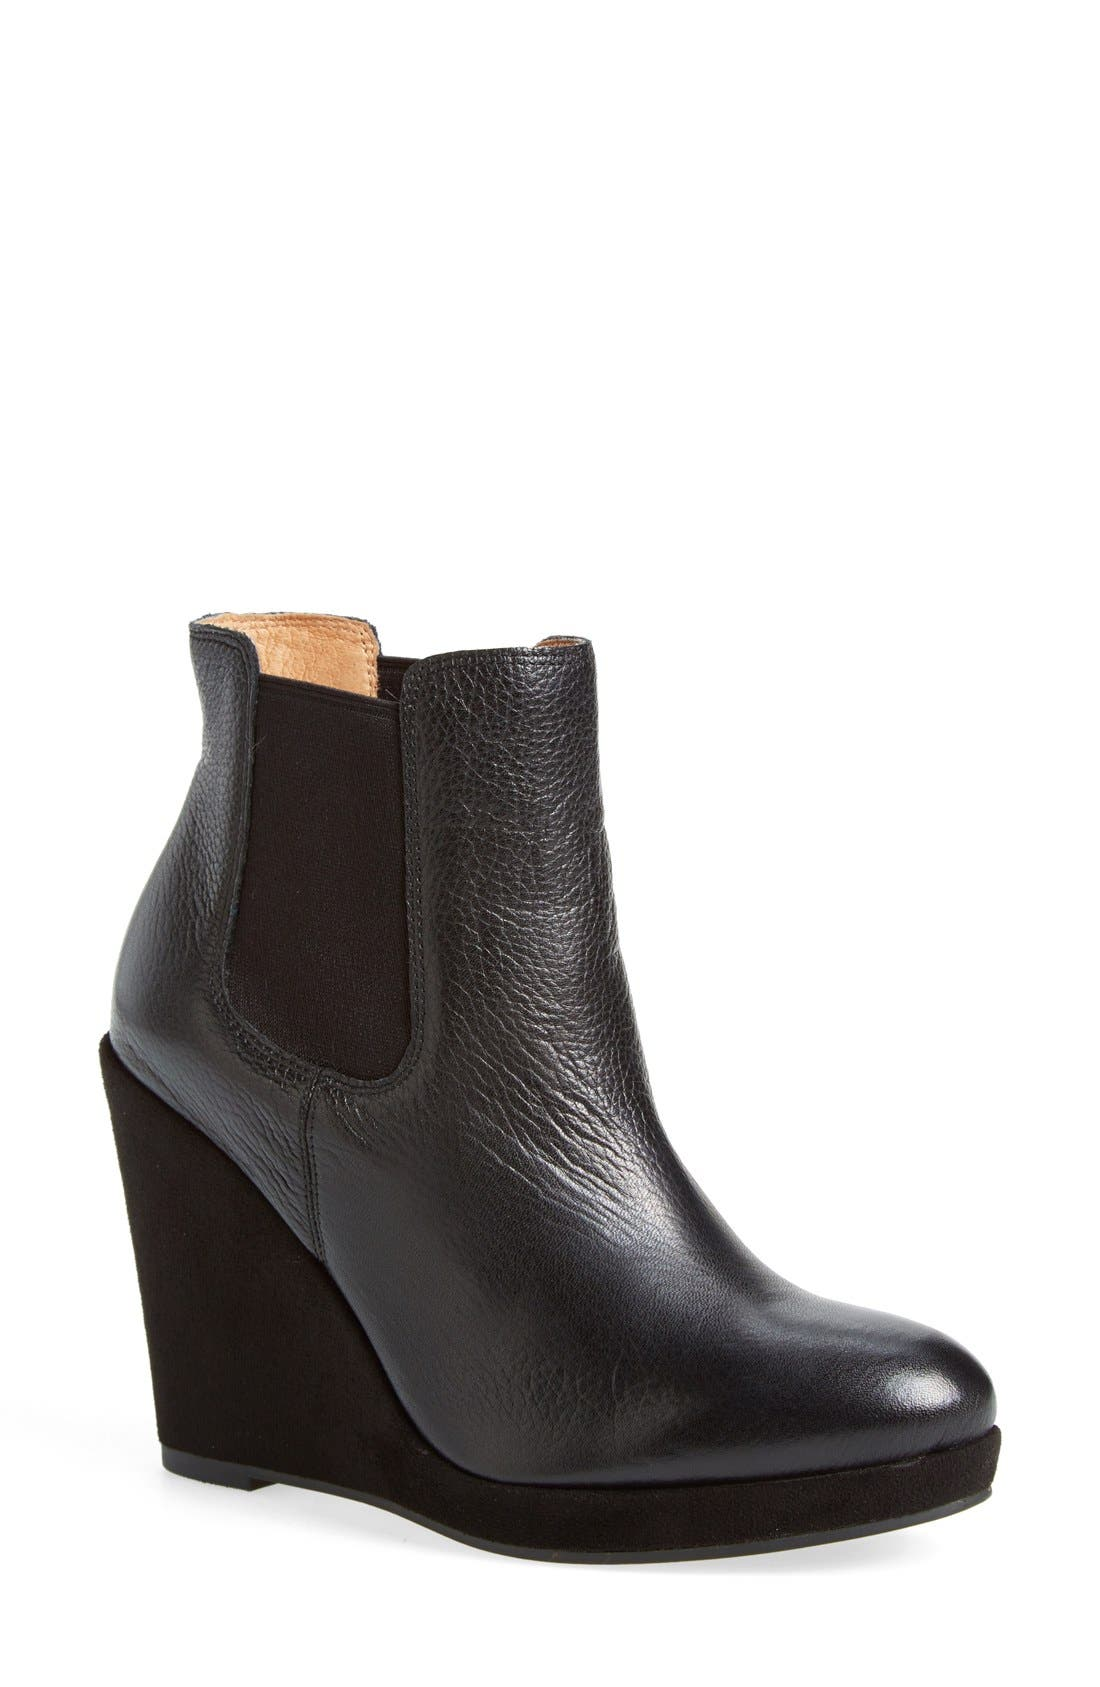 CORSO COMO,                             Corso Como 'Coast' Wedge Bootie,                             Main thumbnail 1, color,                             001